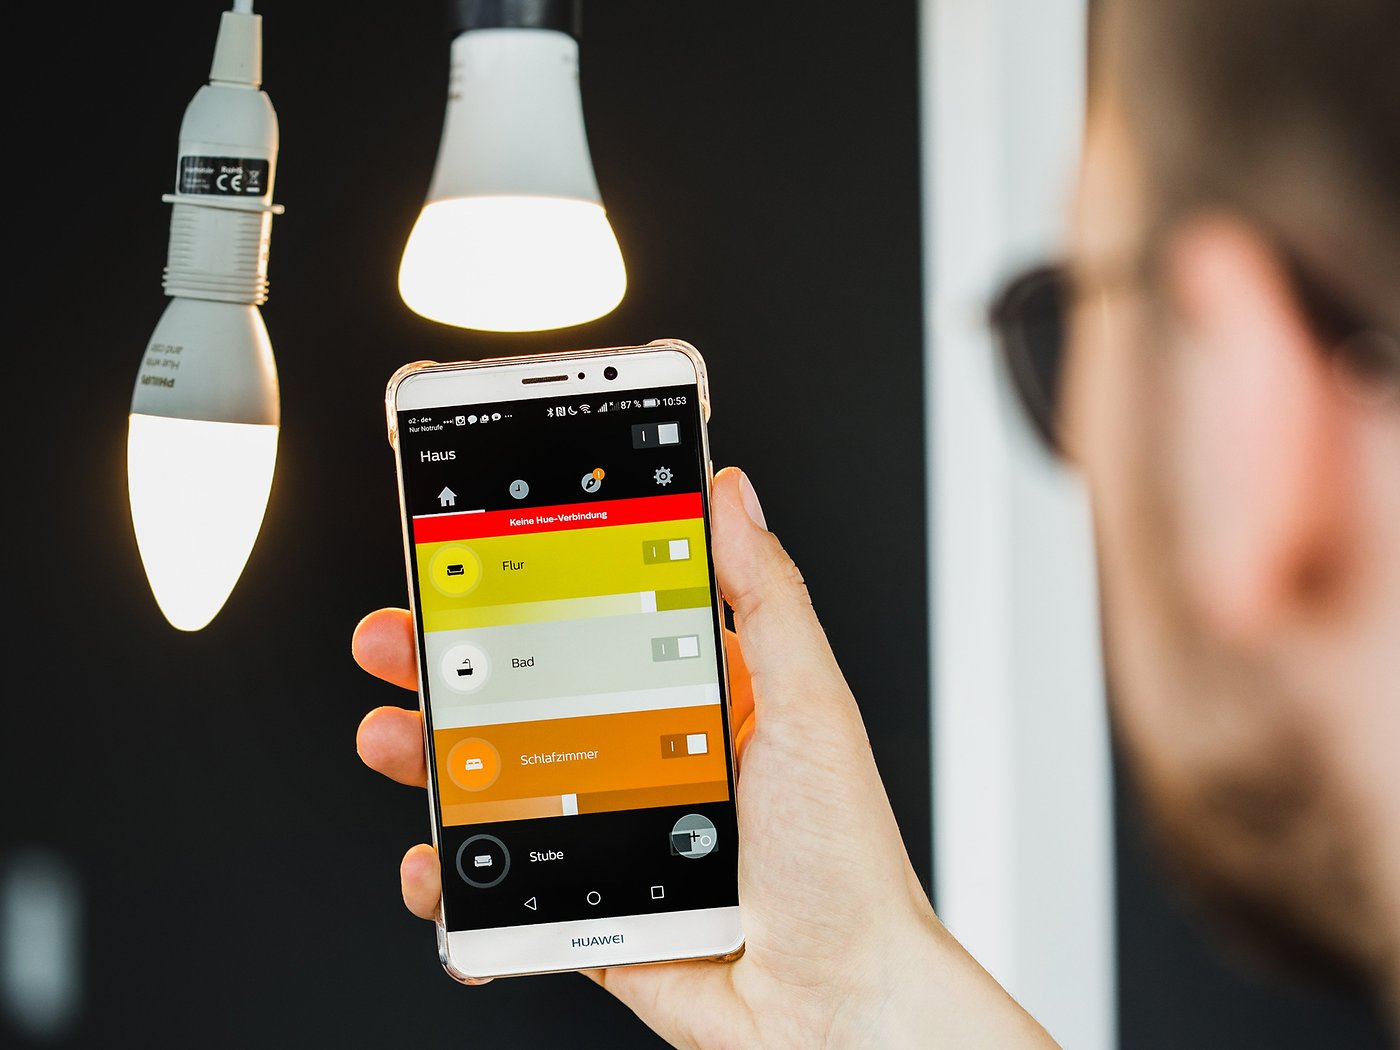 Philips Hue Schlafzimmer Lampe Smart Home Is Addictive How Alexa And Friends Found Their Way